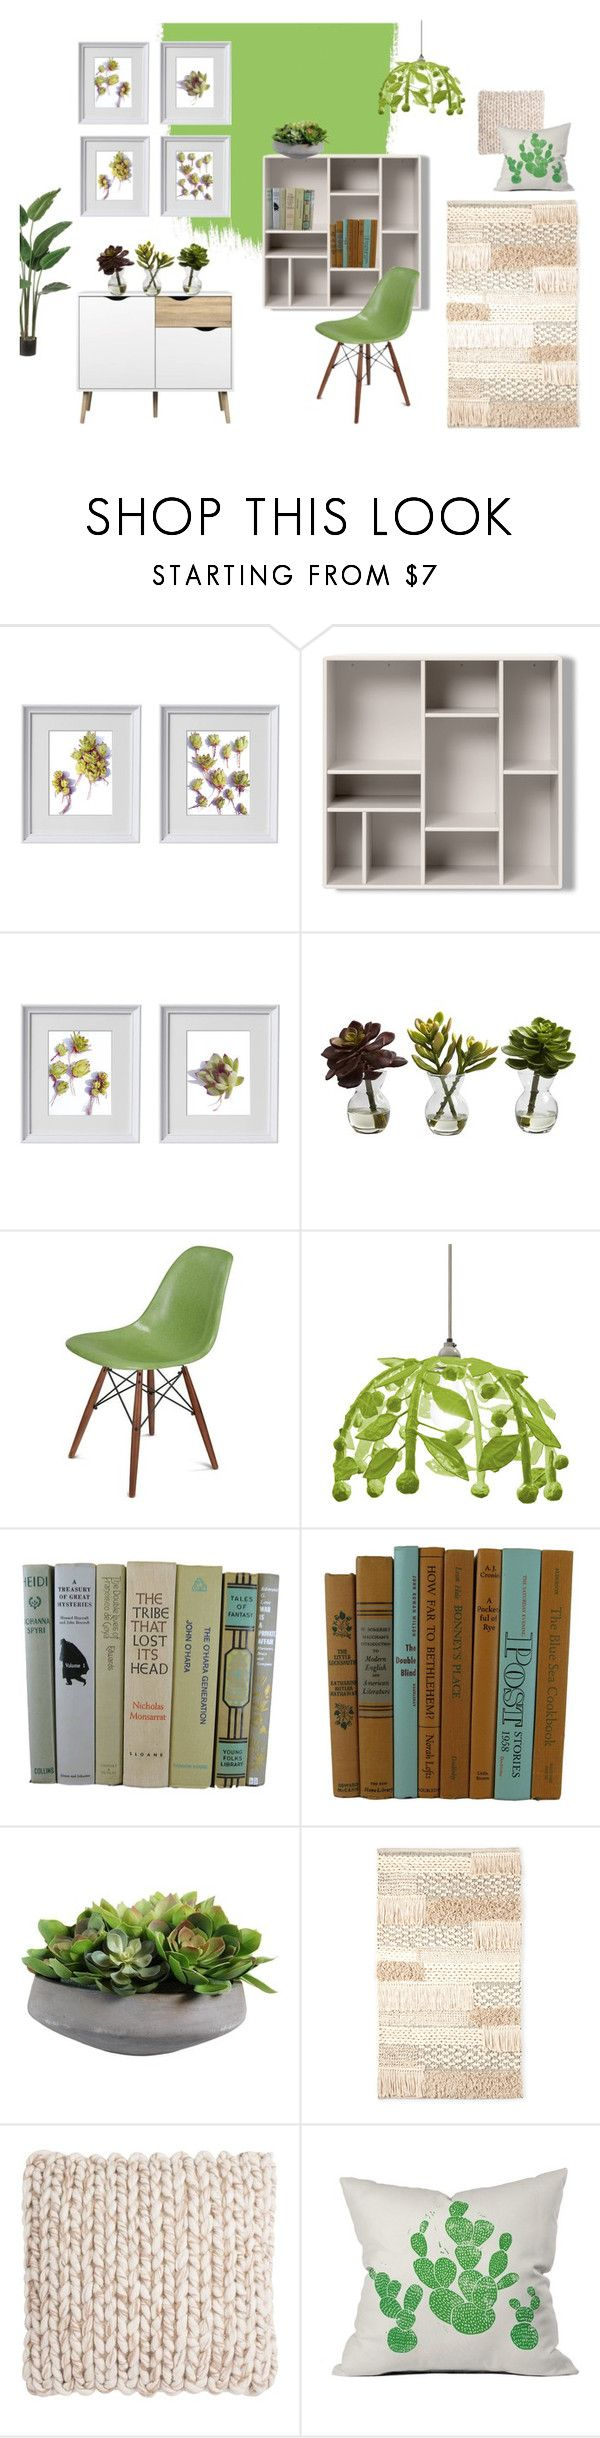 Home Decor set inspired by succulent plants. Green and natural shades.  #succulent #cacti #homedecor #homeoffice #livingroom #green #gallerywall #gallerywallart #walldecor  Succulent Lover by kacix on Polyvore featuring interior, interiors, interior design, home, home decor, interior decorating, Modernica, Stray Dog Designs, Safavieh and DENY Designs